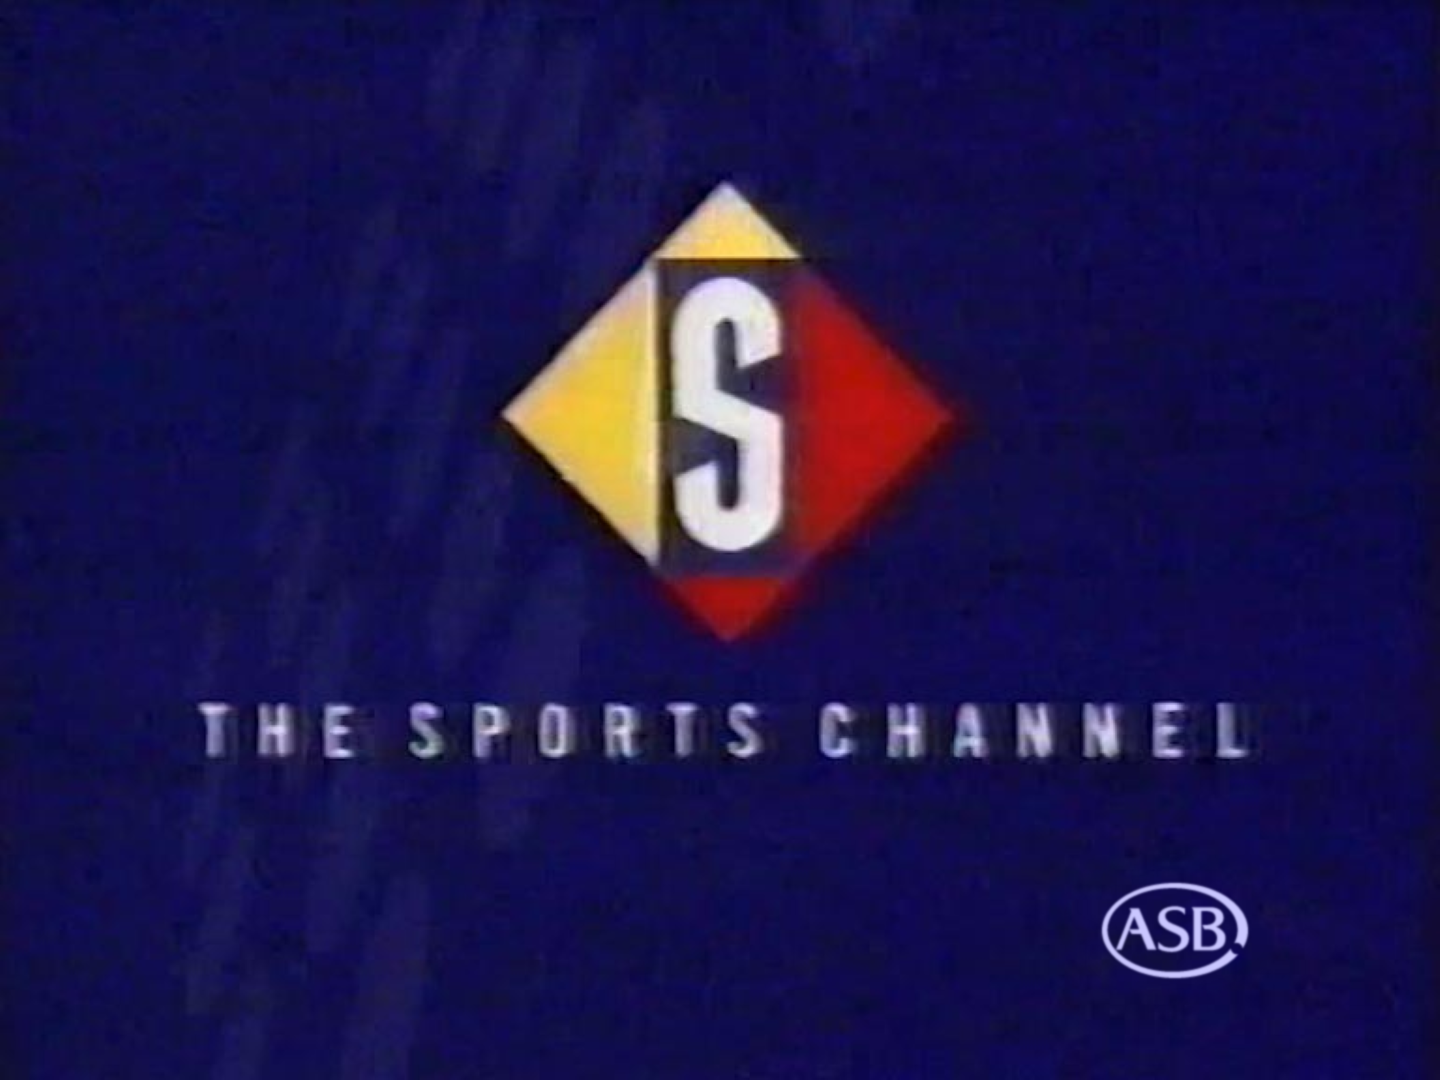 The Sports Channel (Anglosaw)